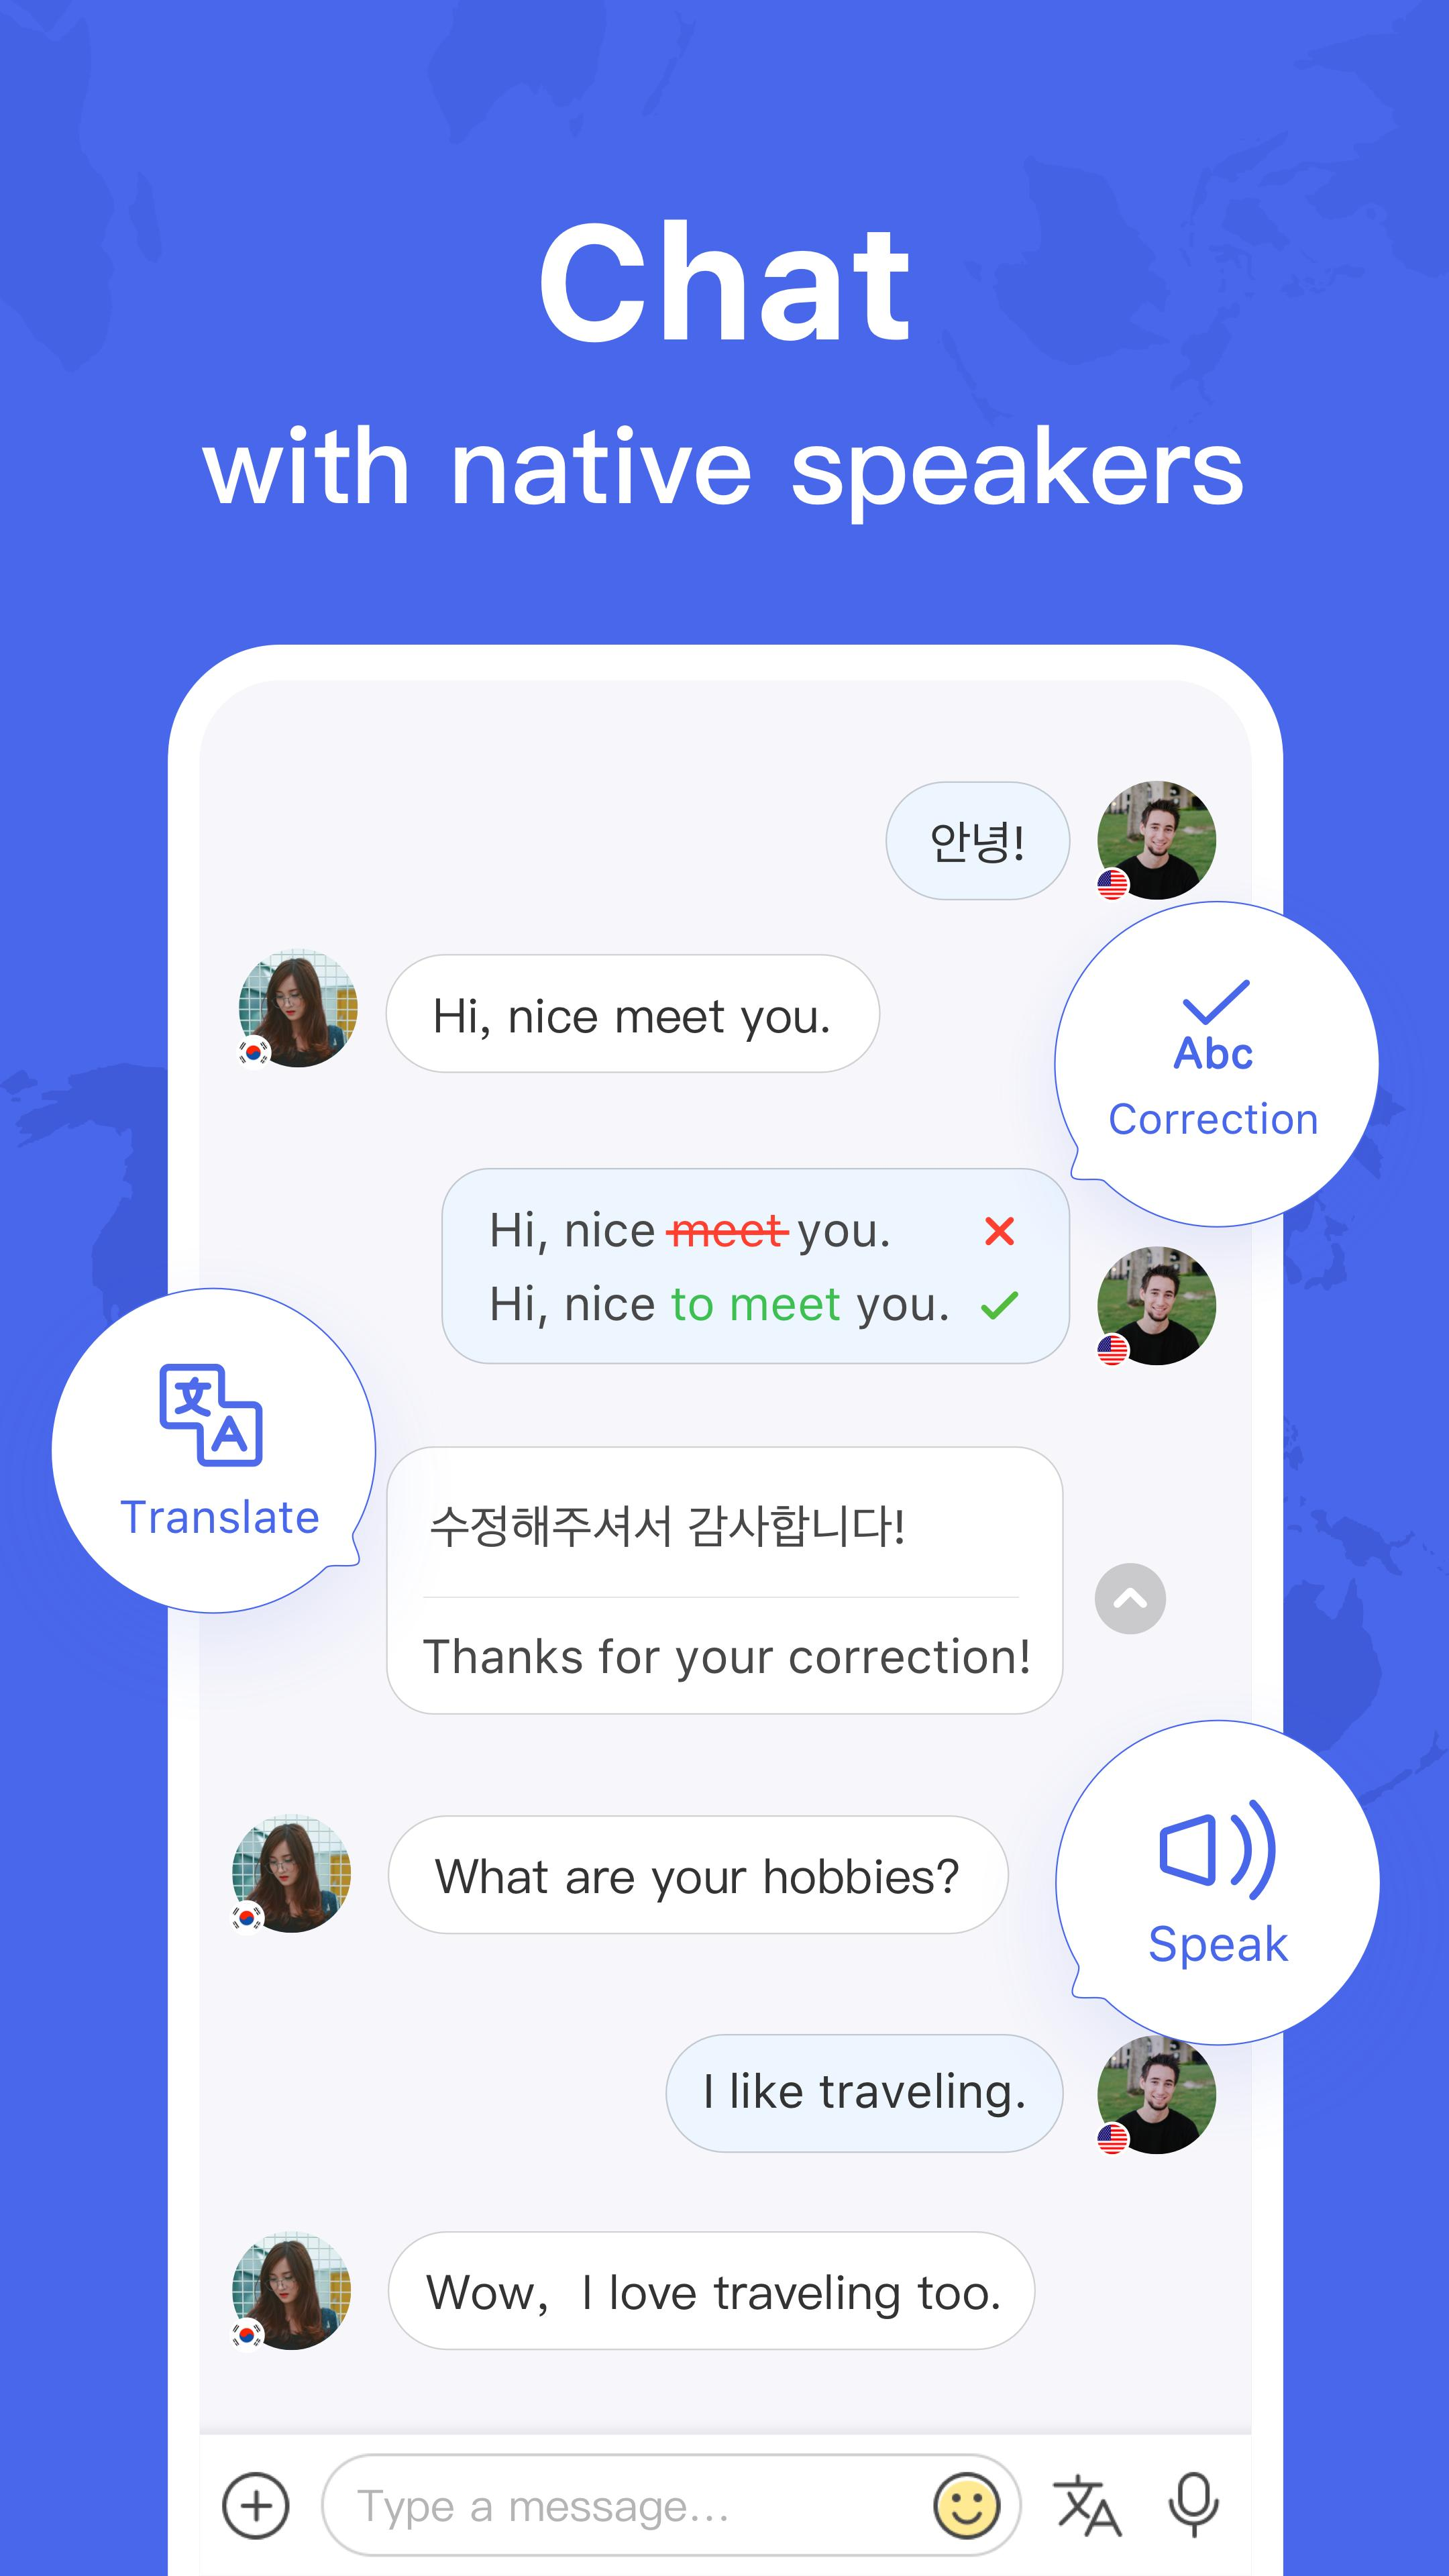 HelloTalk — Chat, Speak & Learn Foreign Languages 4.1.7 Screenshot 1